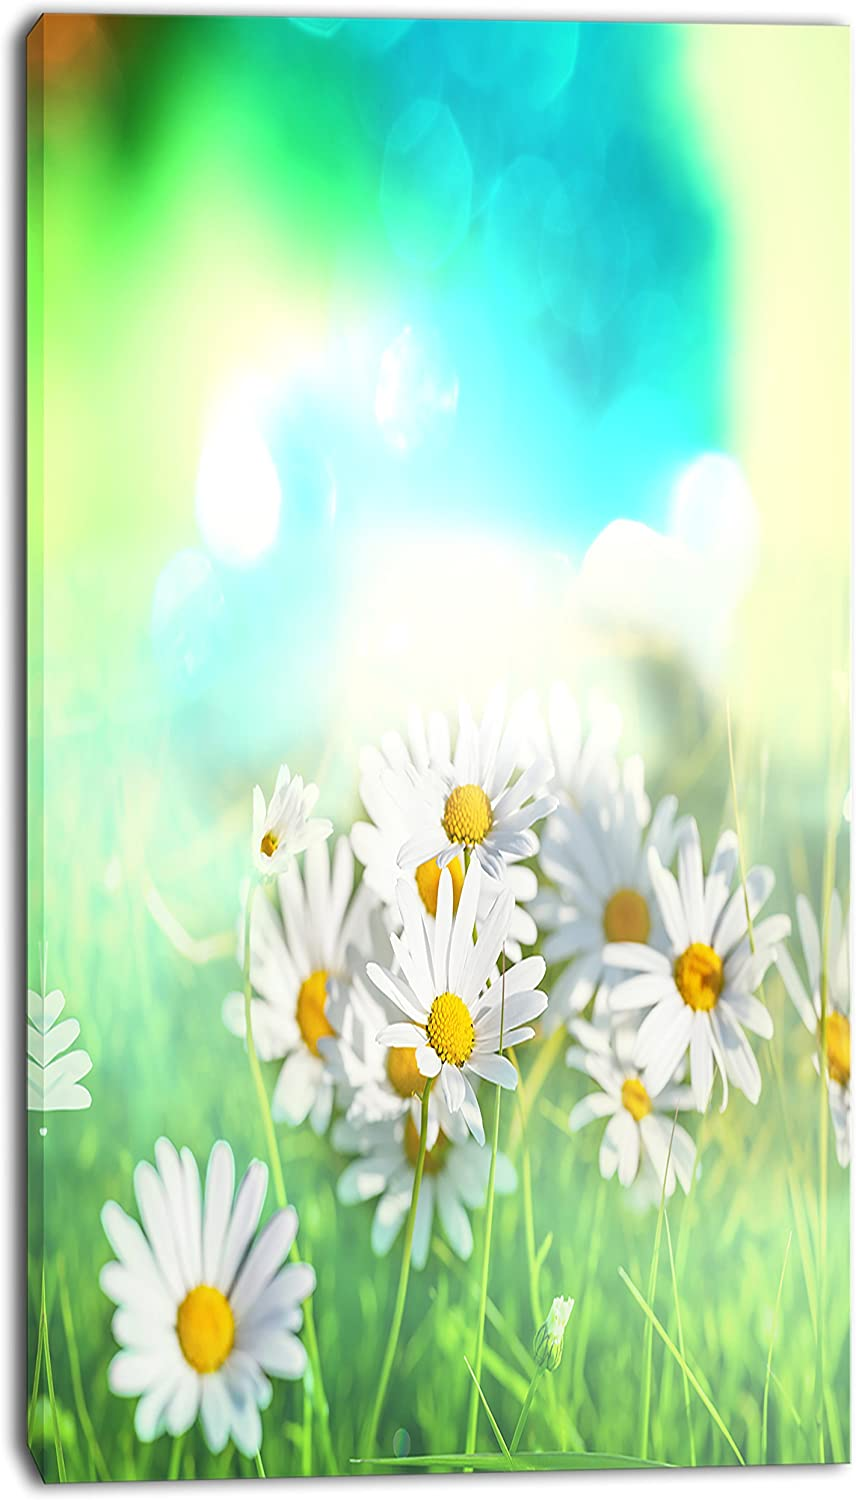 Designart PT124661632 Chamomiles on Abstract Backgroundfloral Artwork on Canvas, 16x32